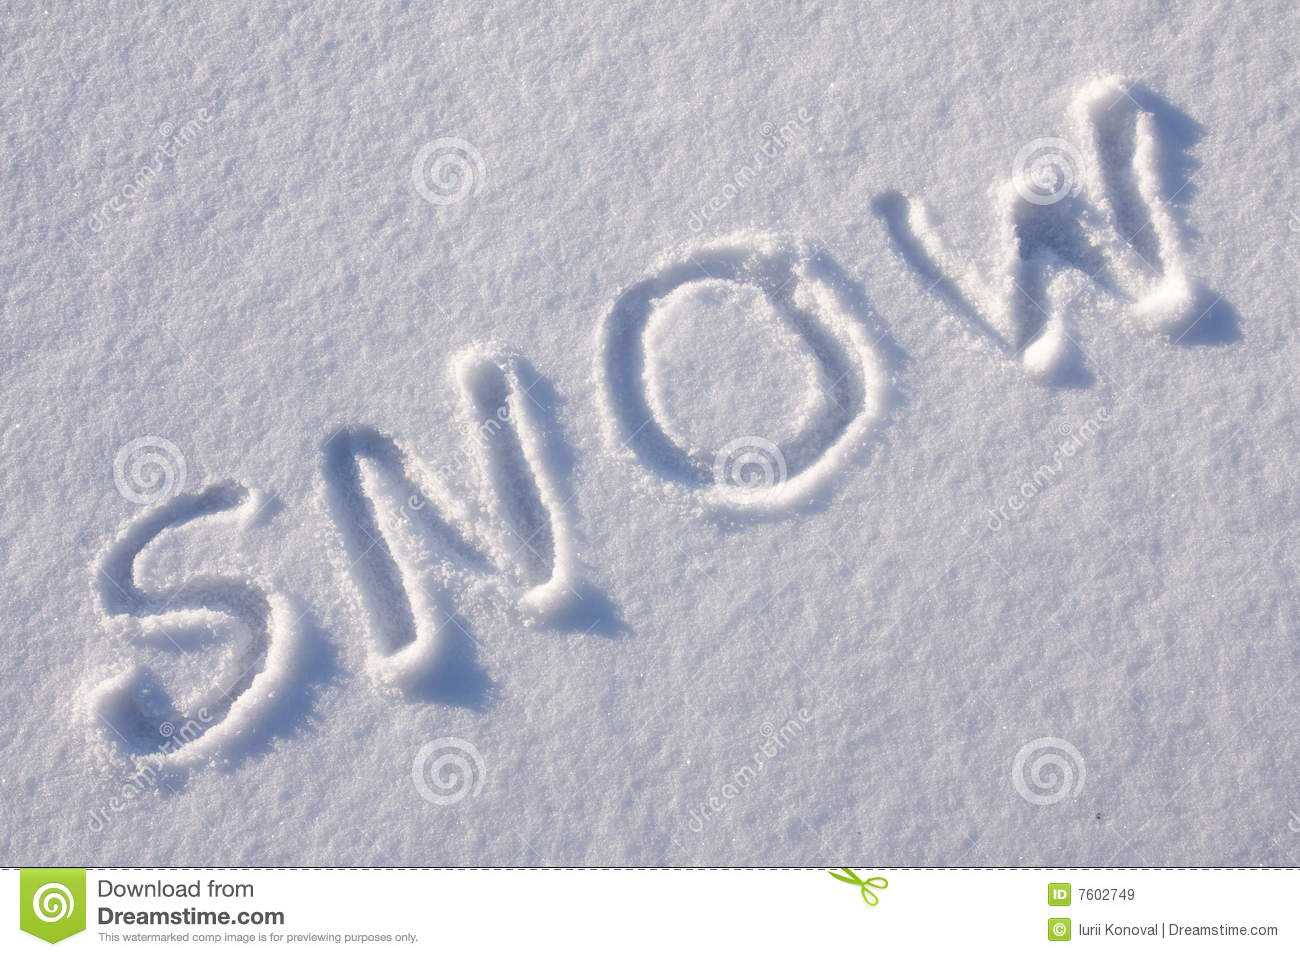 Writing Text On The Snow Royalty Free Stock Images Image